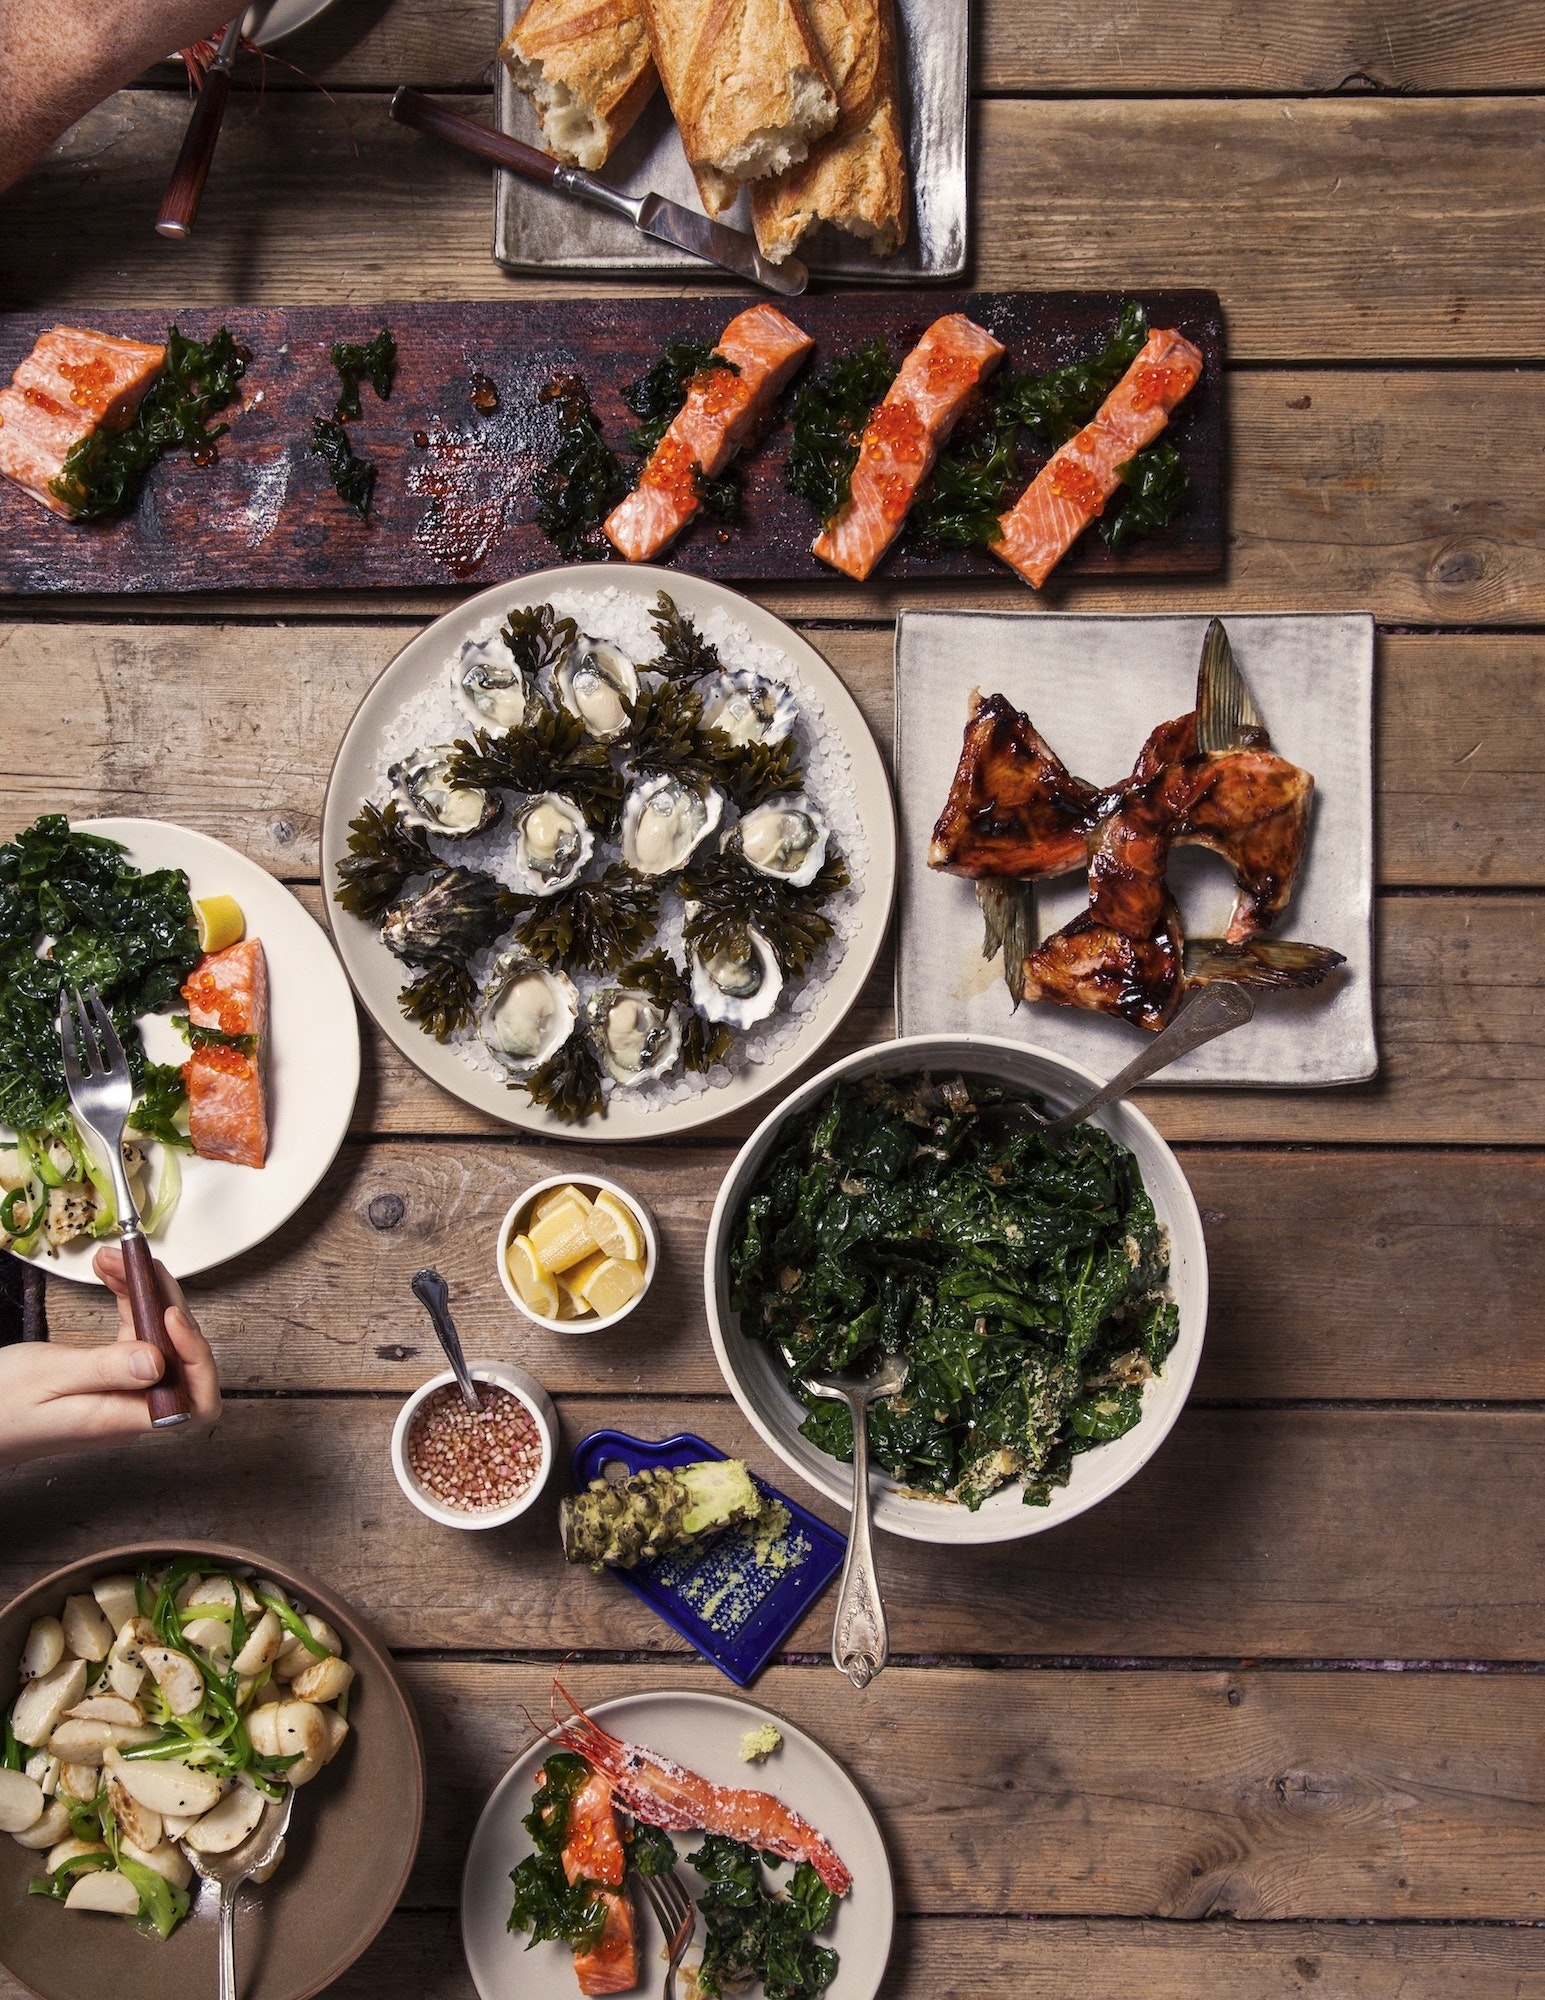 Locally foraged ingredients and products grown at small farms come together for a casual feast.